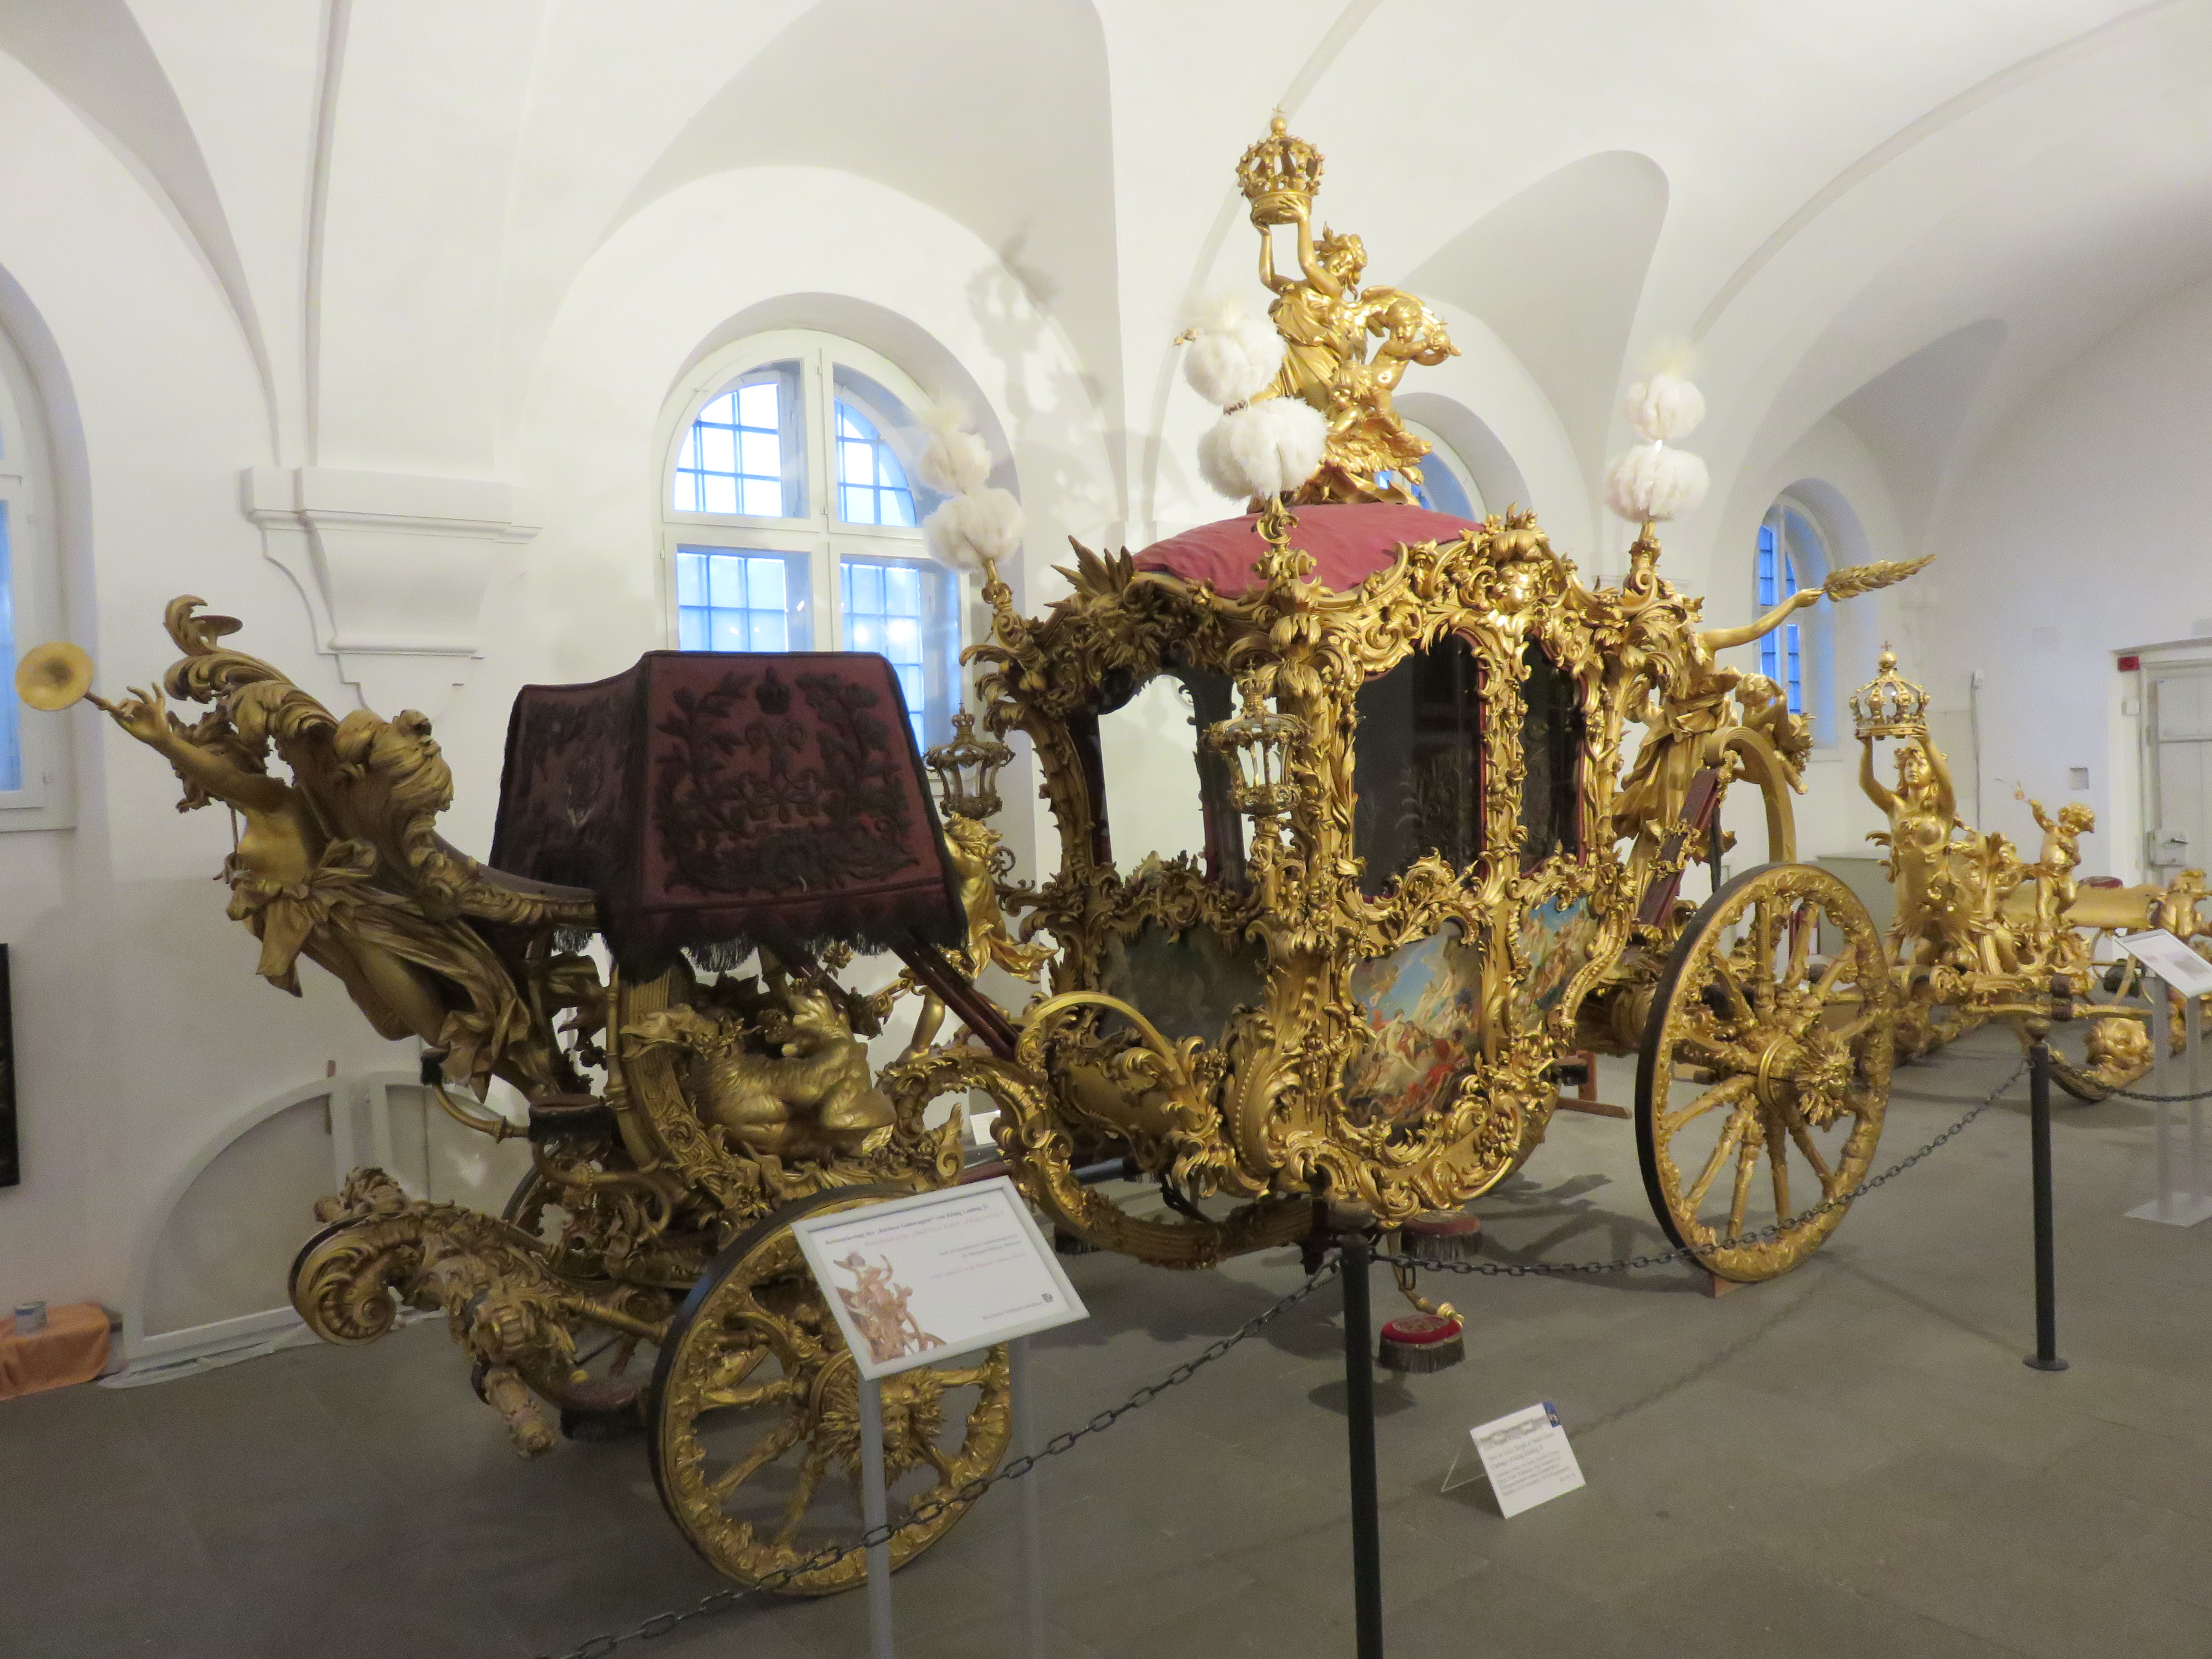 IMG_9652 Just one of the many gilded coaches used by royalty on display..JPG